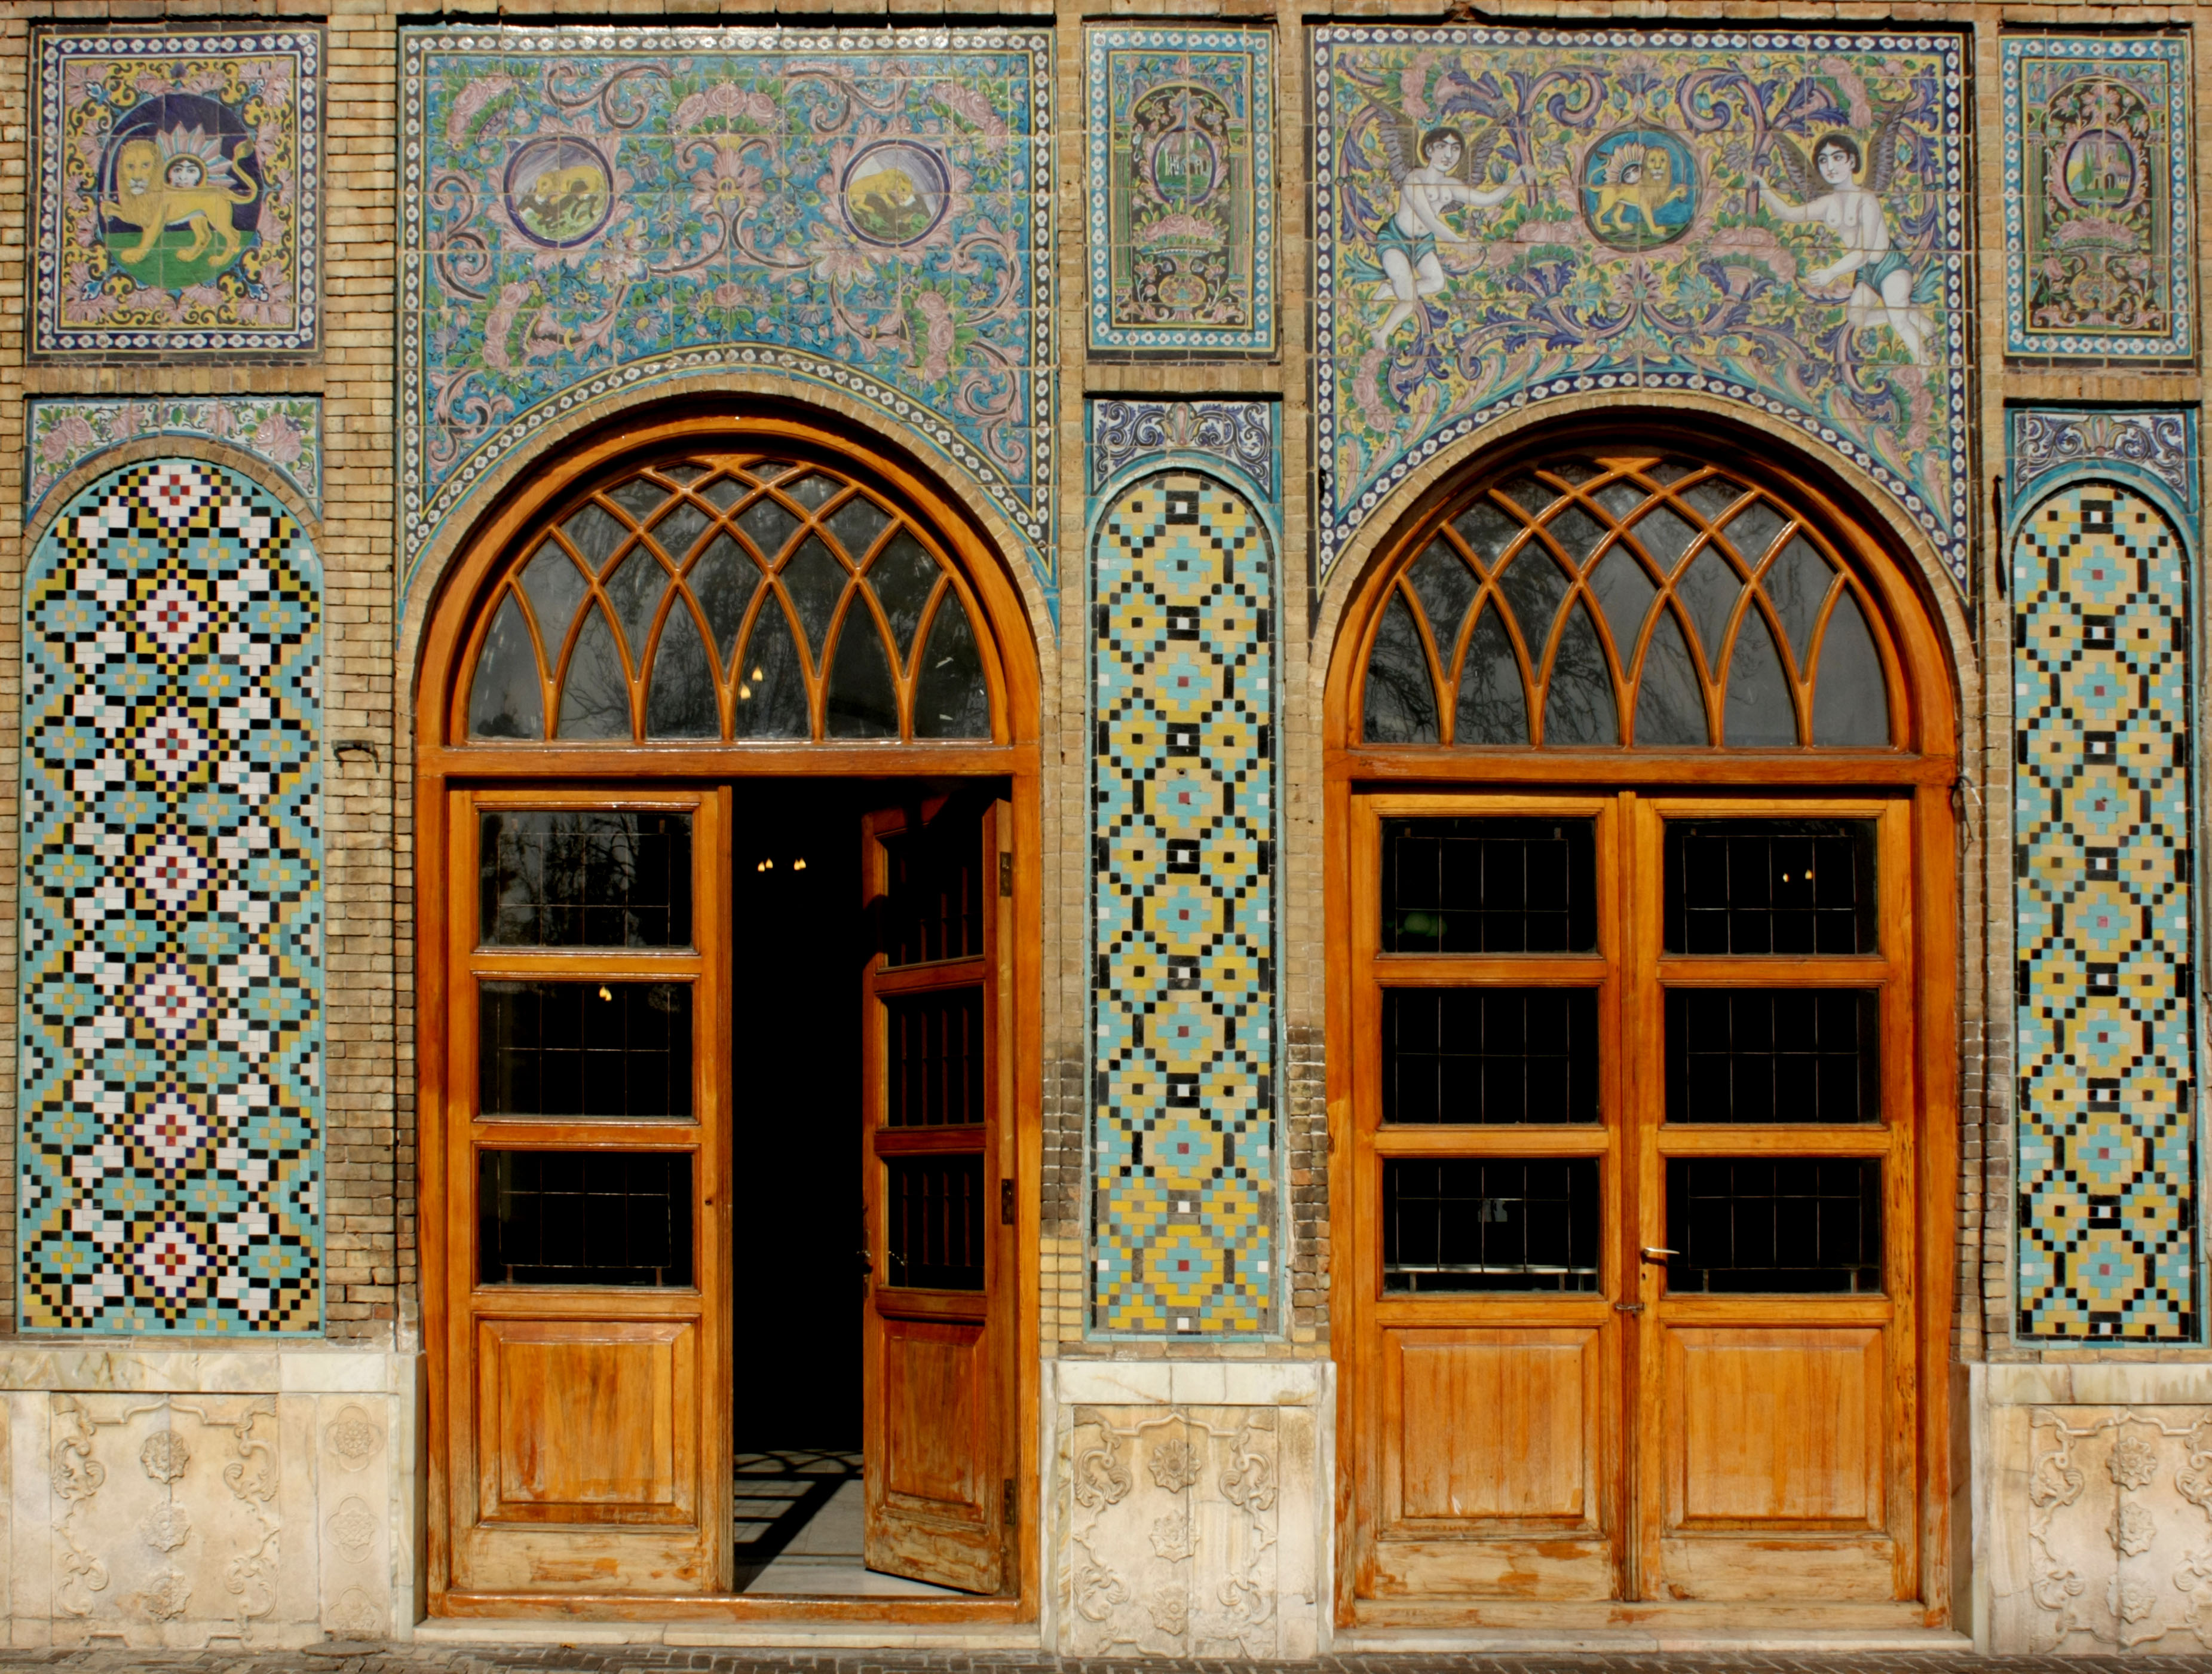 FileGolestan door.JPG & File:Golestan door.JPG - Wikimedia Commons